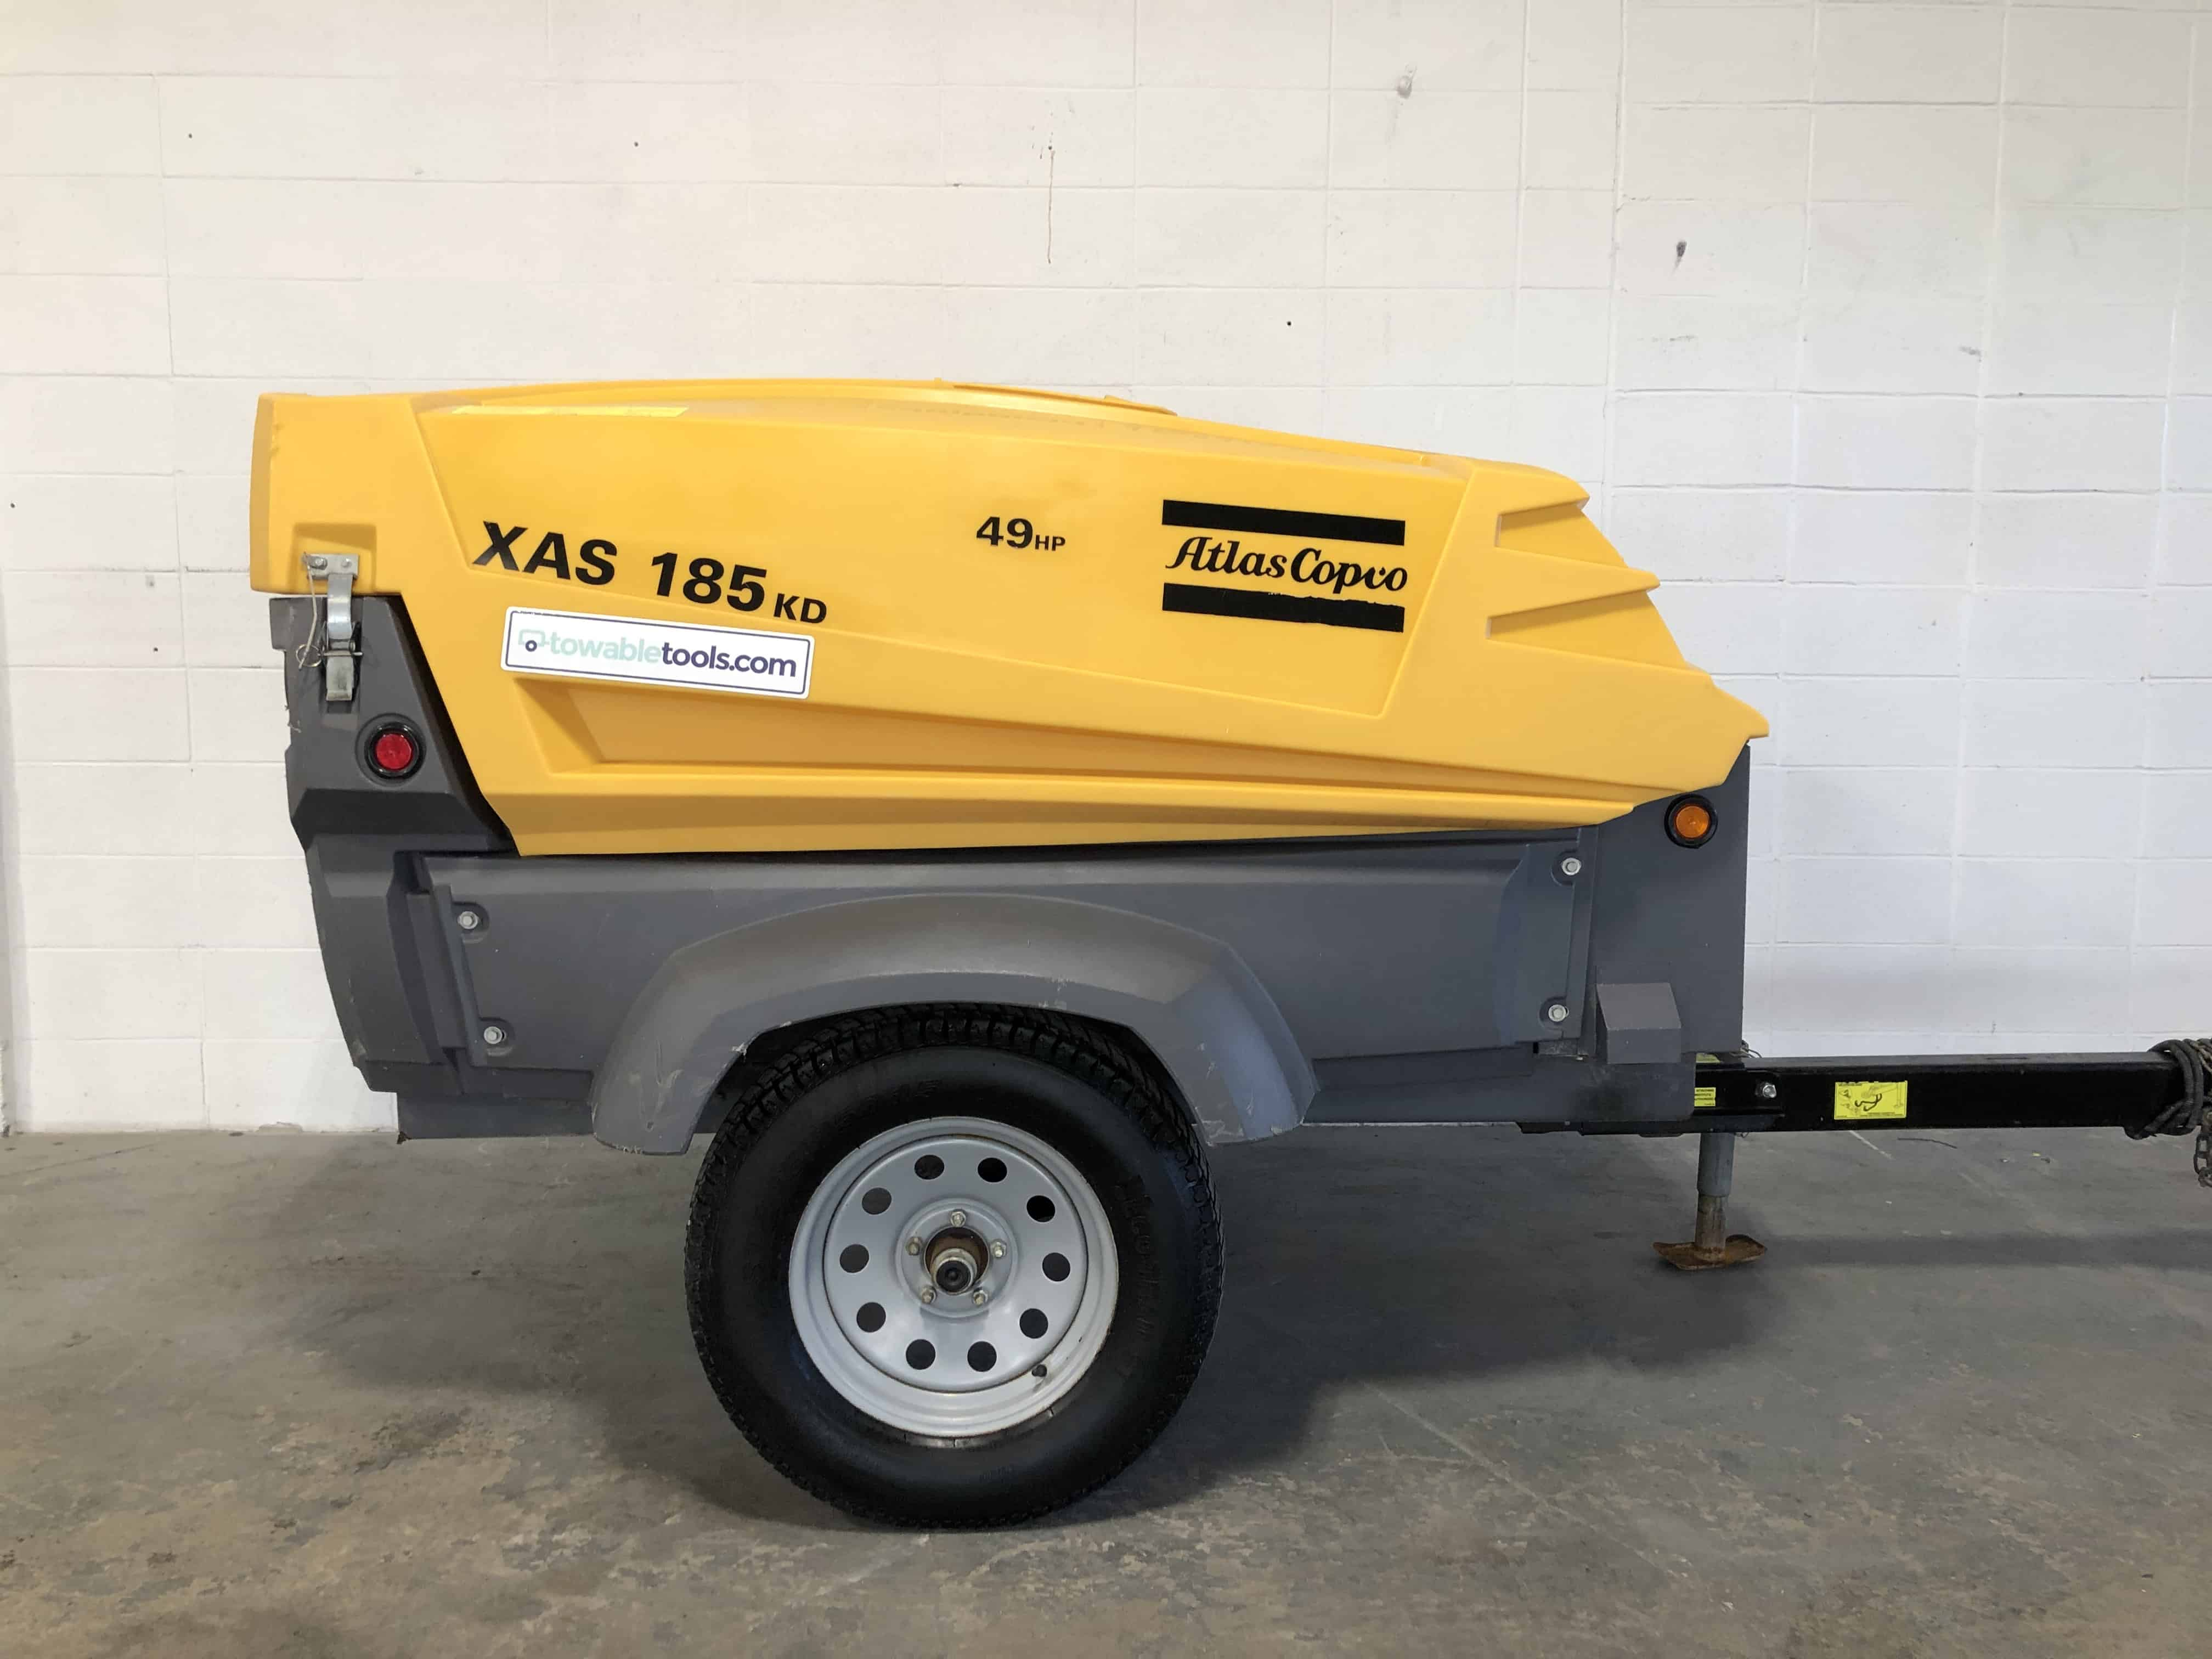 2015 Atlas Copco XAS 185 CFM air compressor for sale at Towable Tools